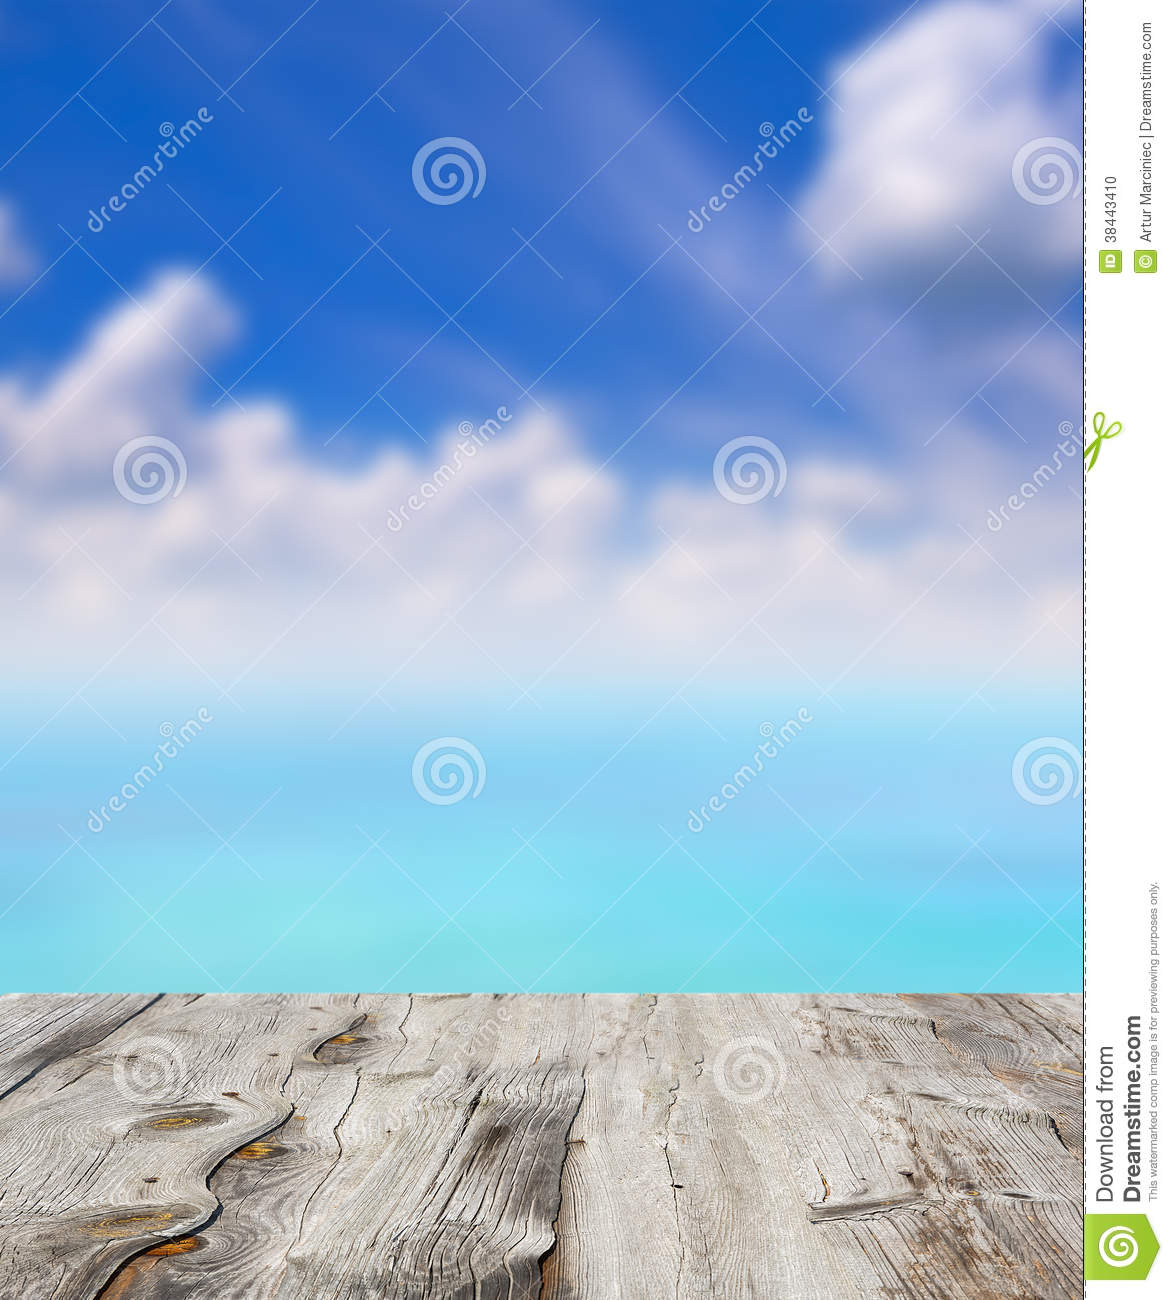 Beauty Seascape Under Blue Clouds Sky. Stock Photo - Image: 38443410